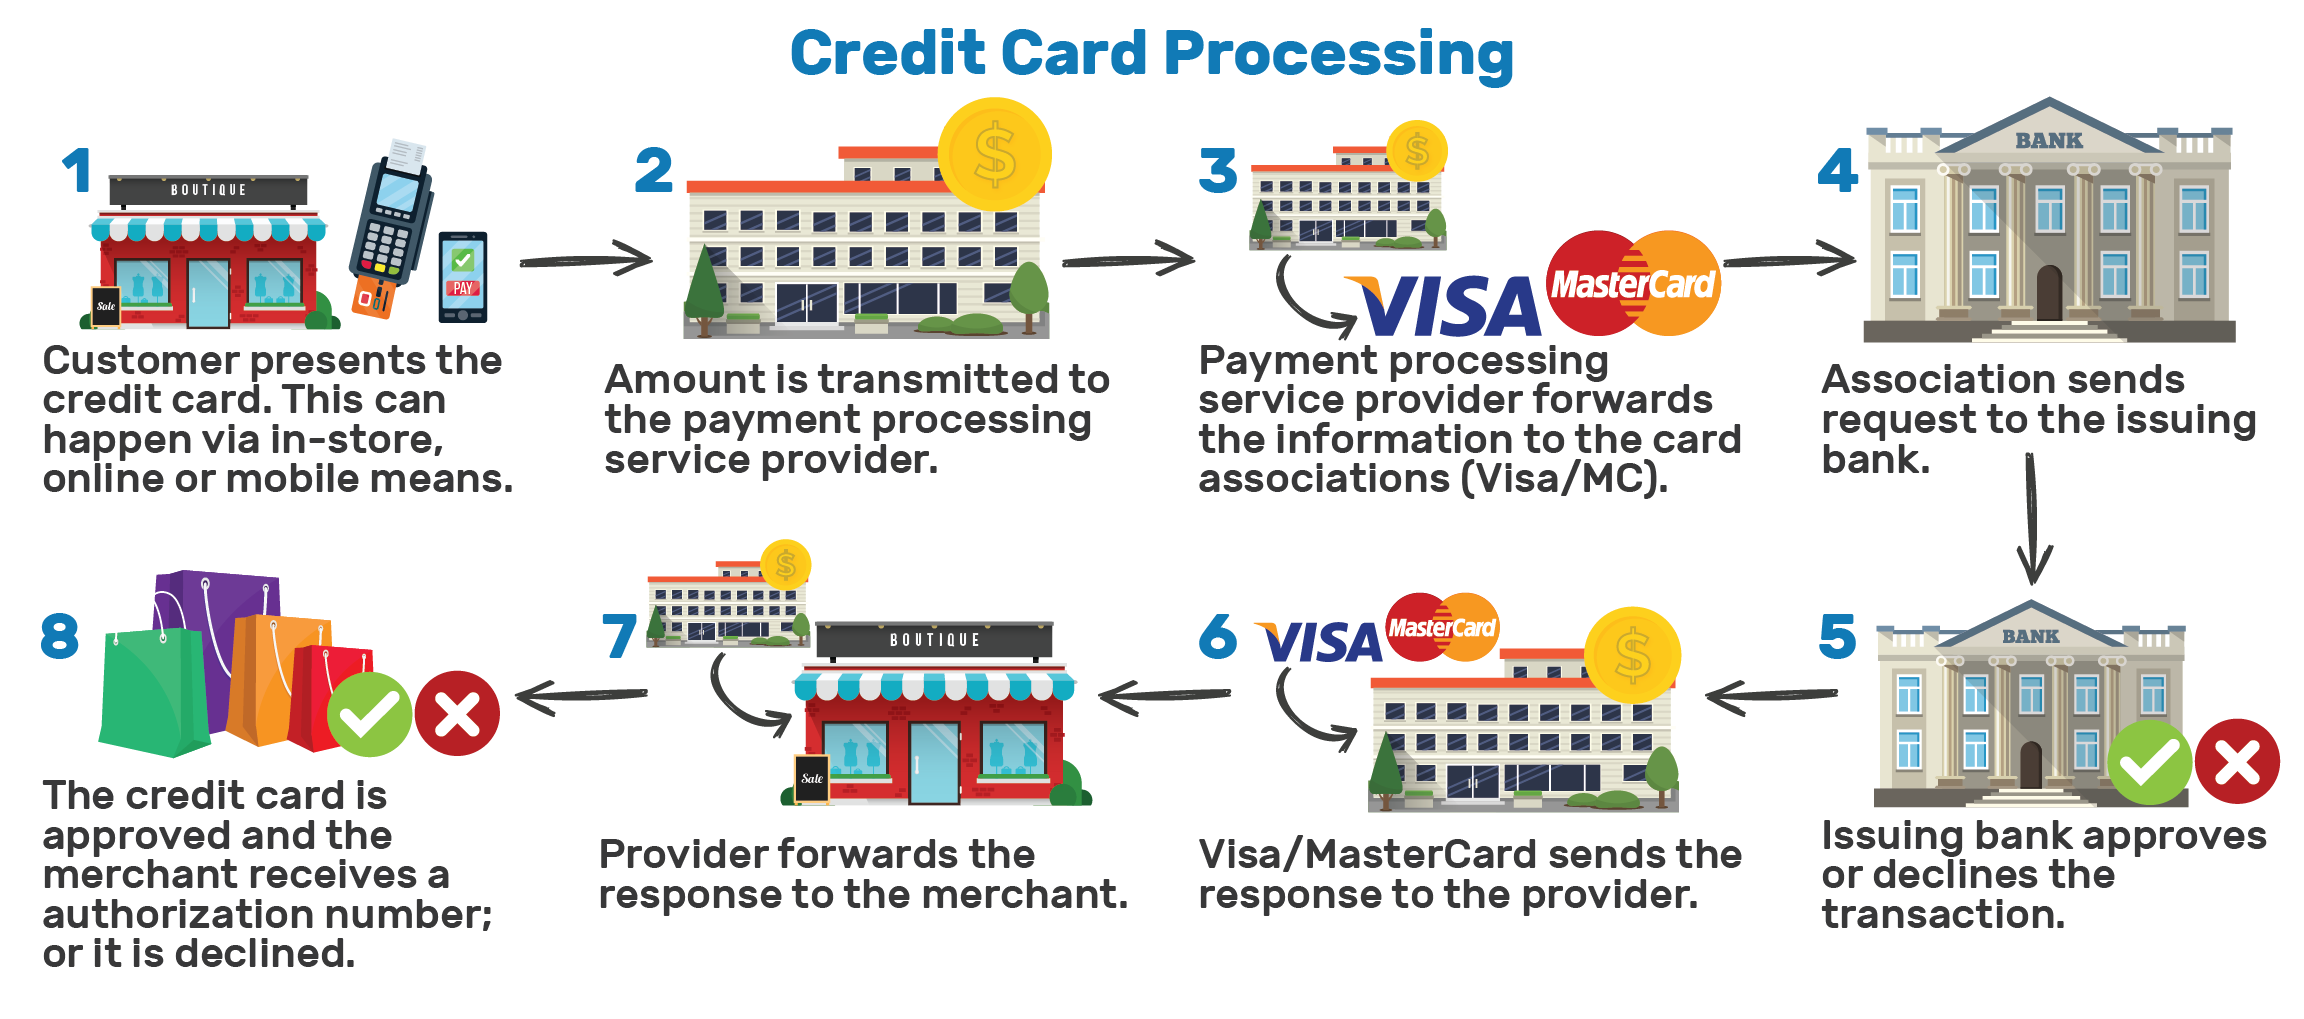 How interchange works credit card processing